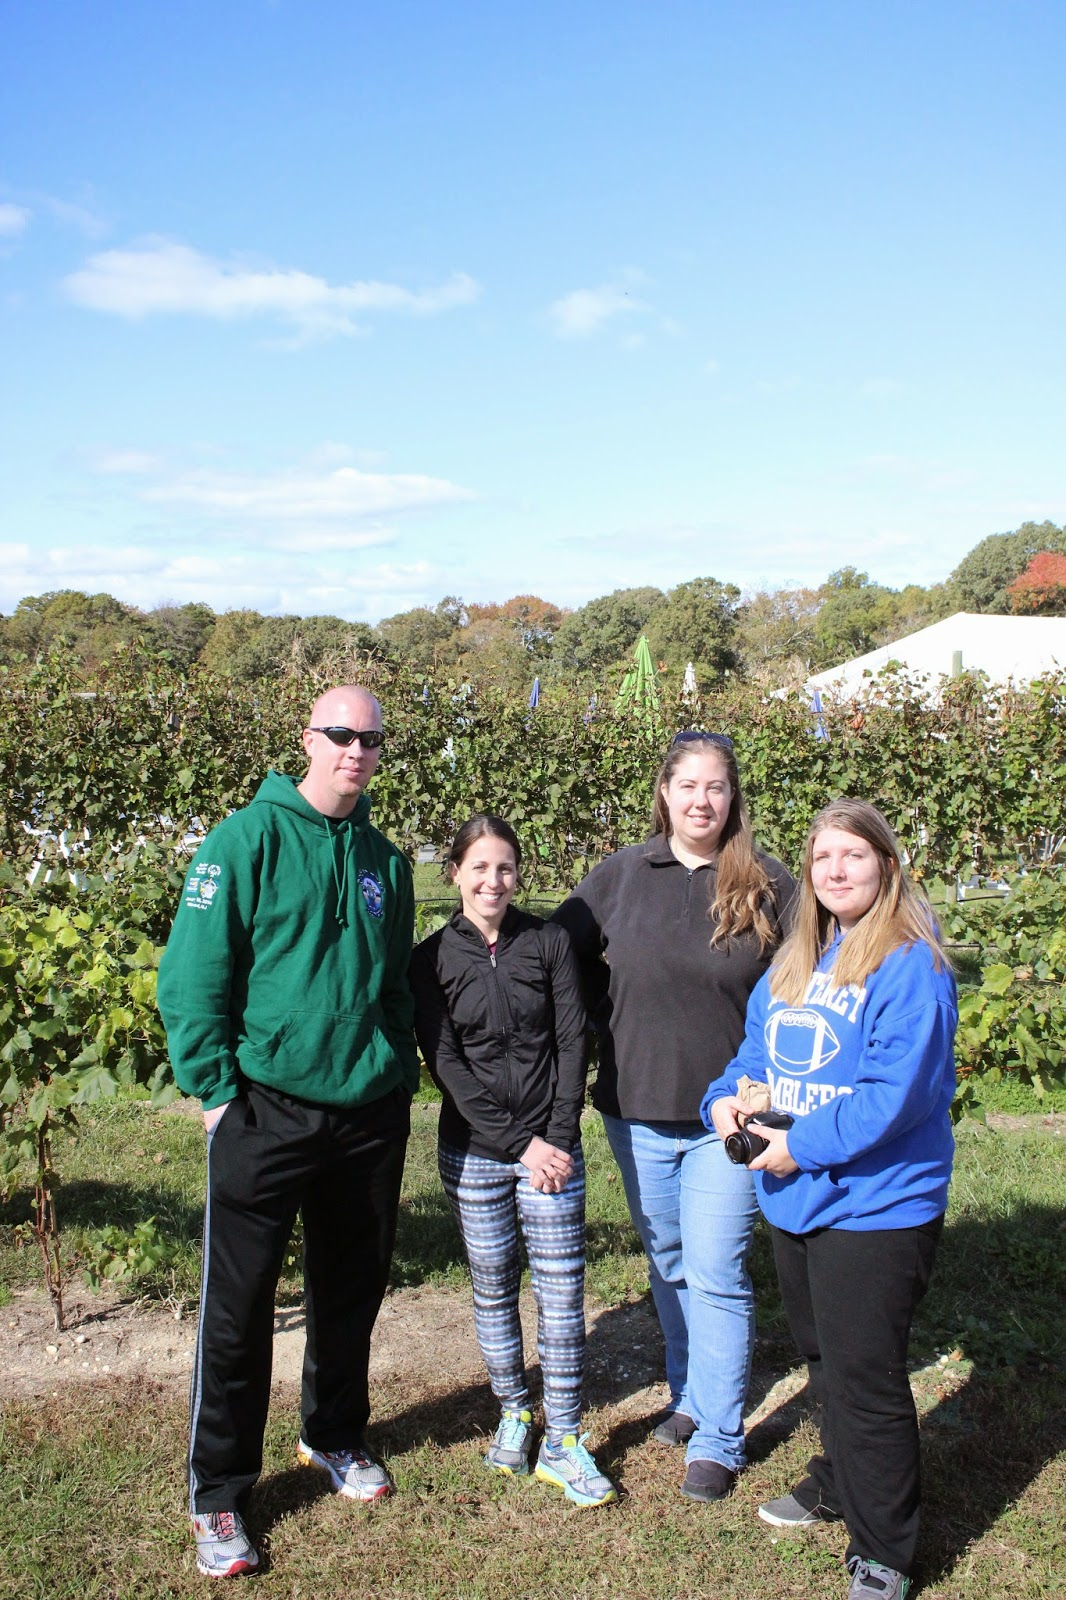 cape may wine trail - Natali Vineyards